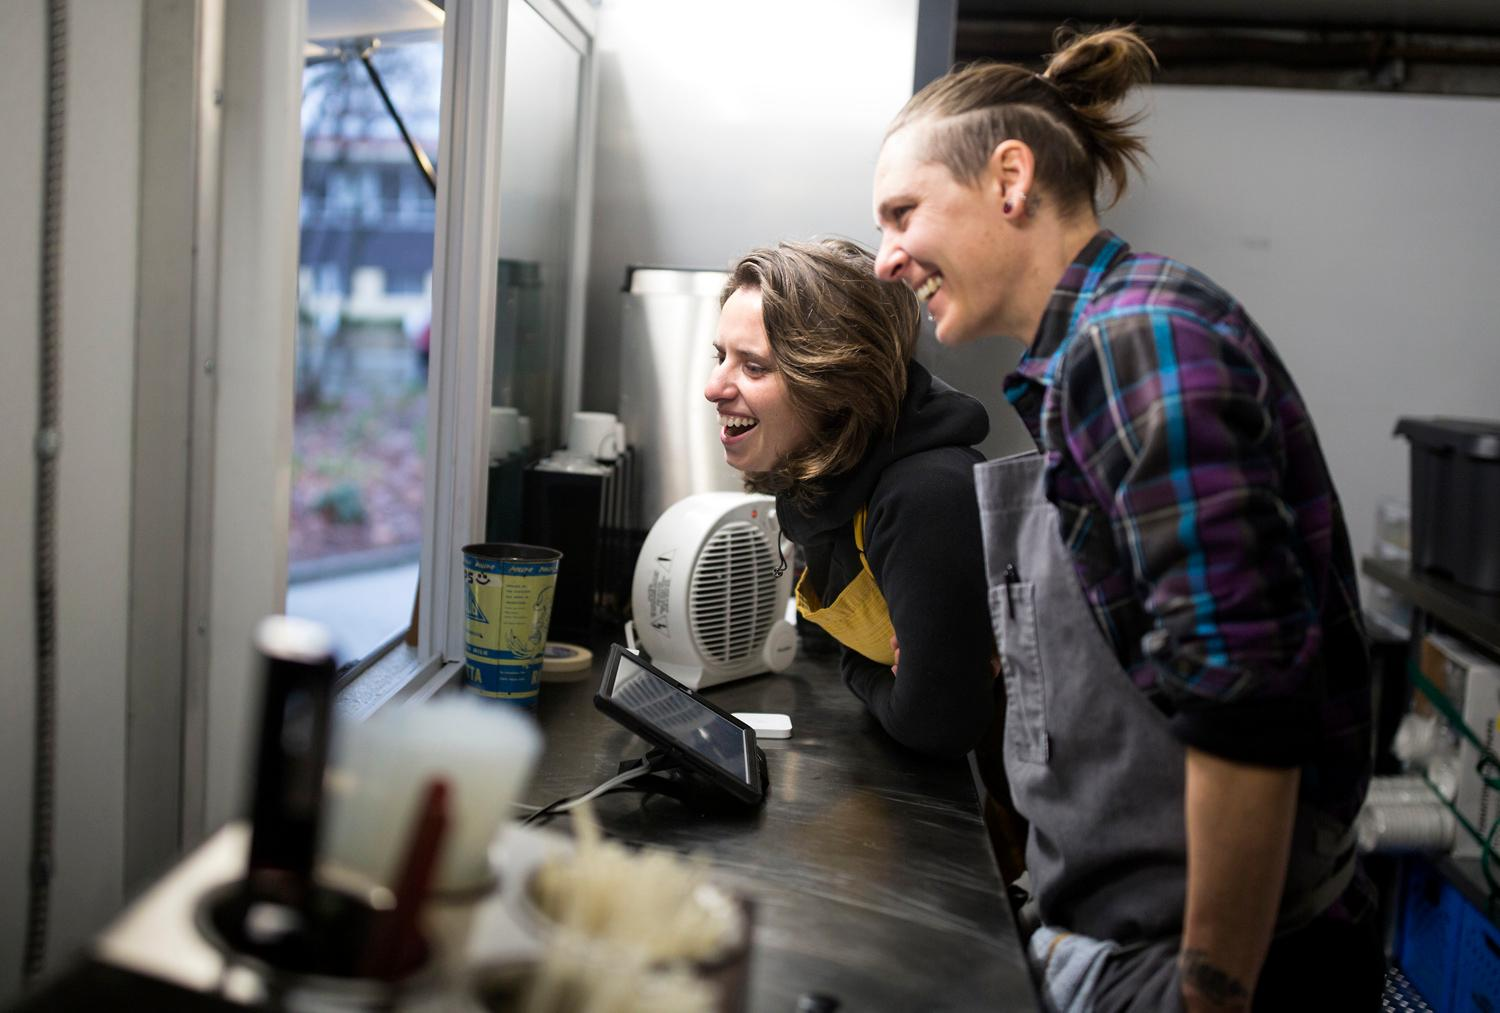 Ande Janousek, right, and Tara Zumpano laugh with customers as they cook up tasty breakfast sandwiches at their Sunny Up food truck. (Sy Bean / Seattle Refined)